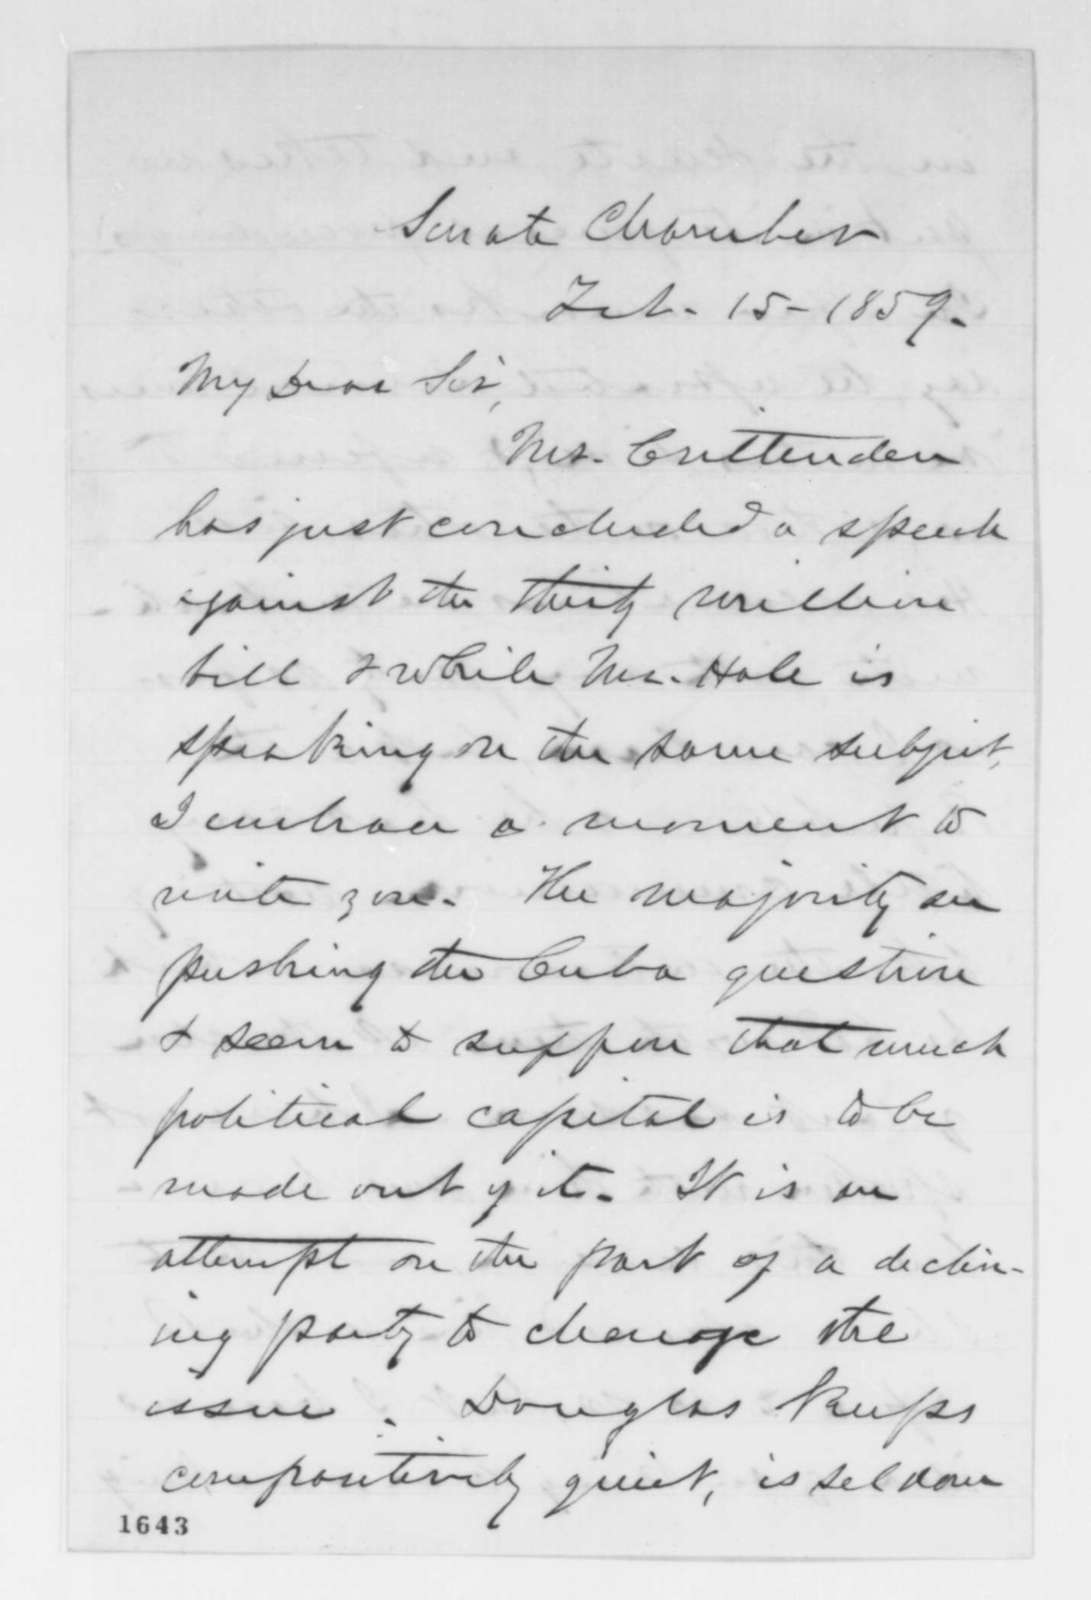 Lyman Trumbull to Abraham Lincoln, Tuesday, February 15, 1859